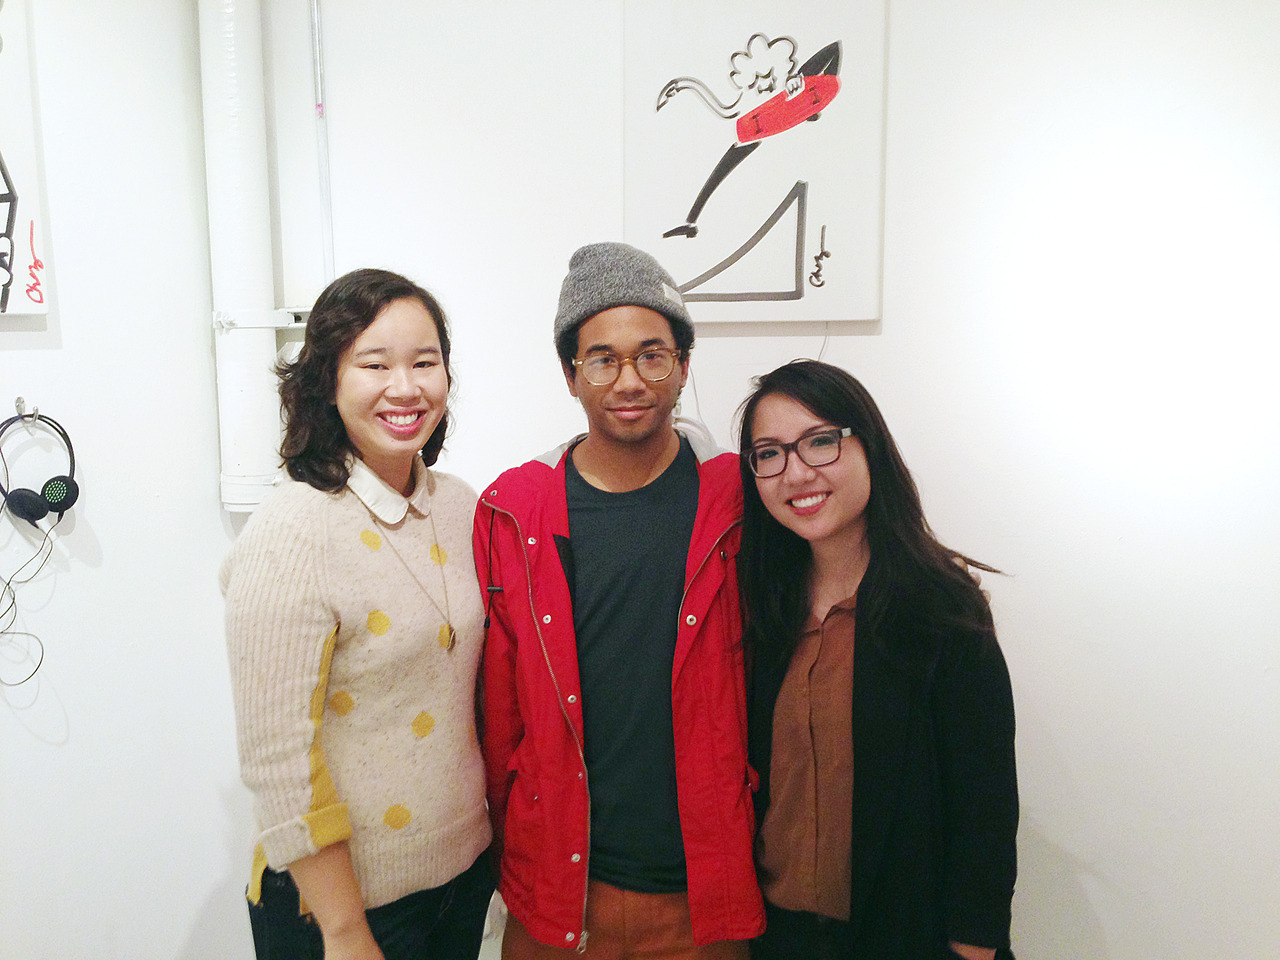 *V*I*P*s hangin' out with Toro y Moi at his Anything In Return art exhibit.